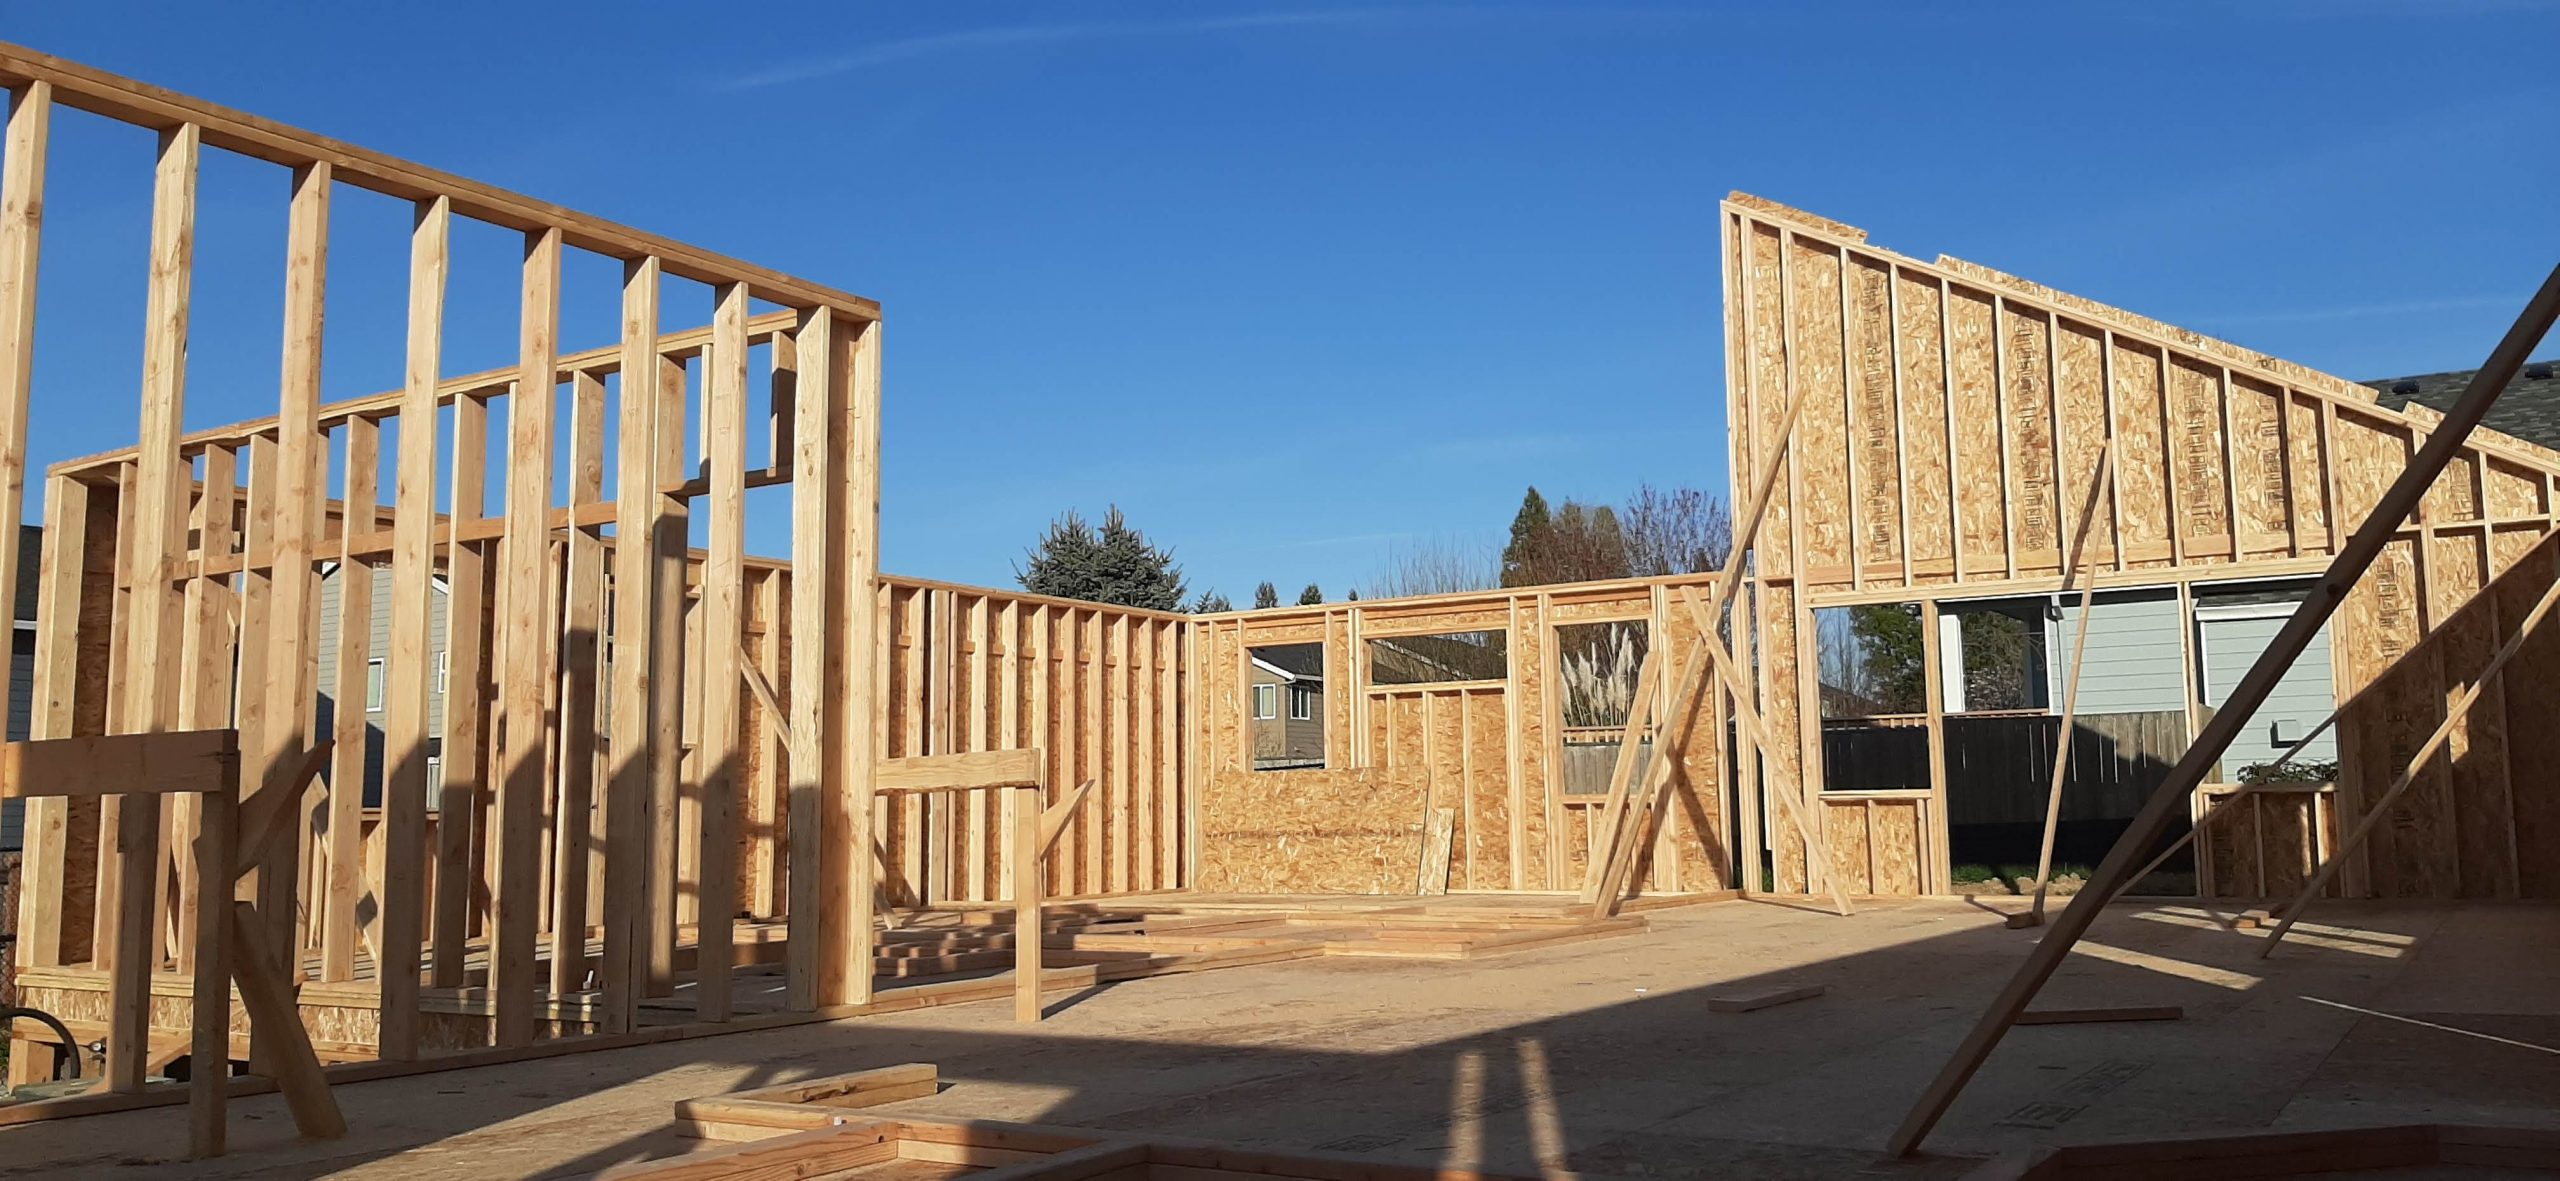 One of Quality Calvary's spec homes in the initial stages of construction